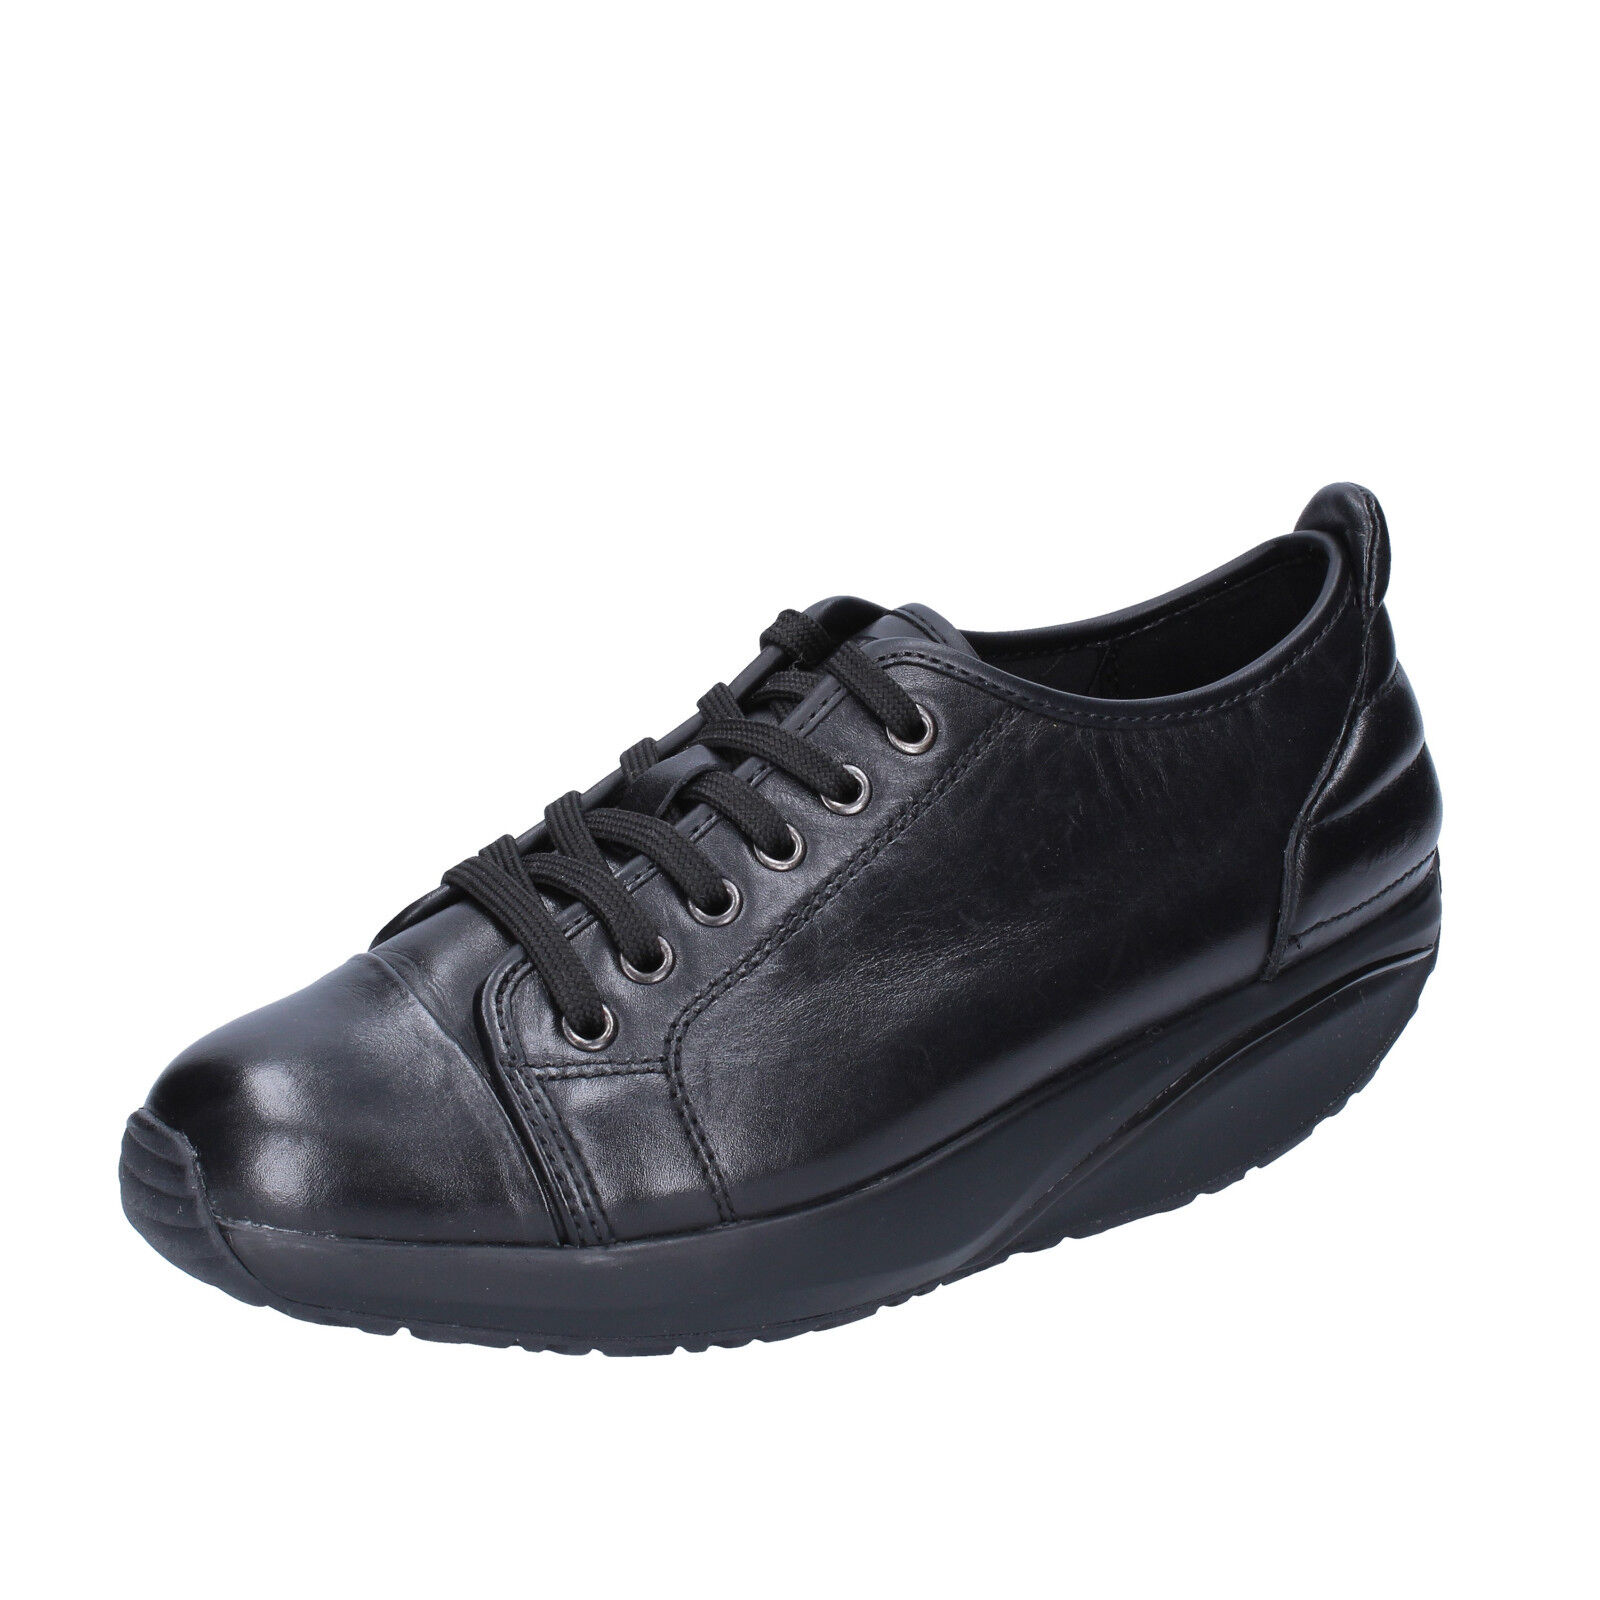 Femme   chaussures  MBT AFIYA 5S 3,5 (EU 36) sneakers  noir  leather performance BT64-36